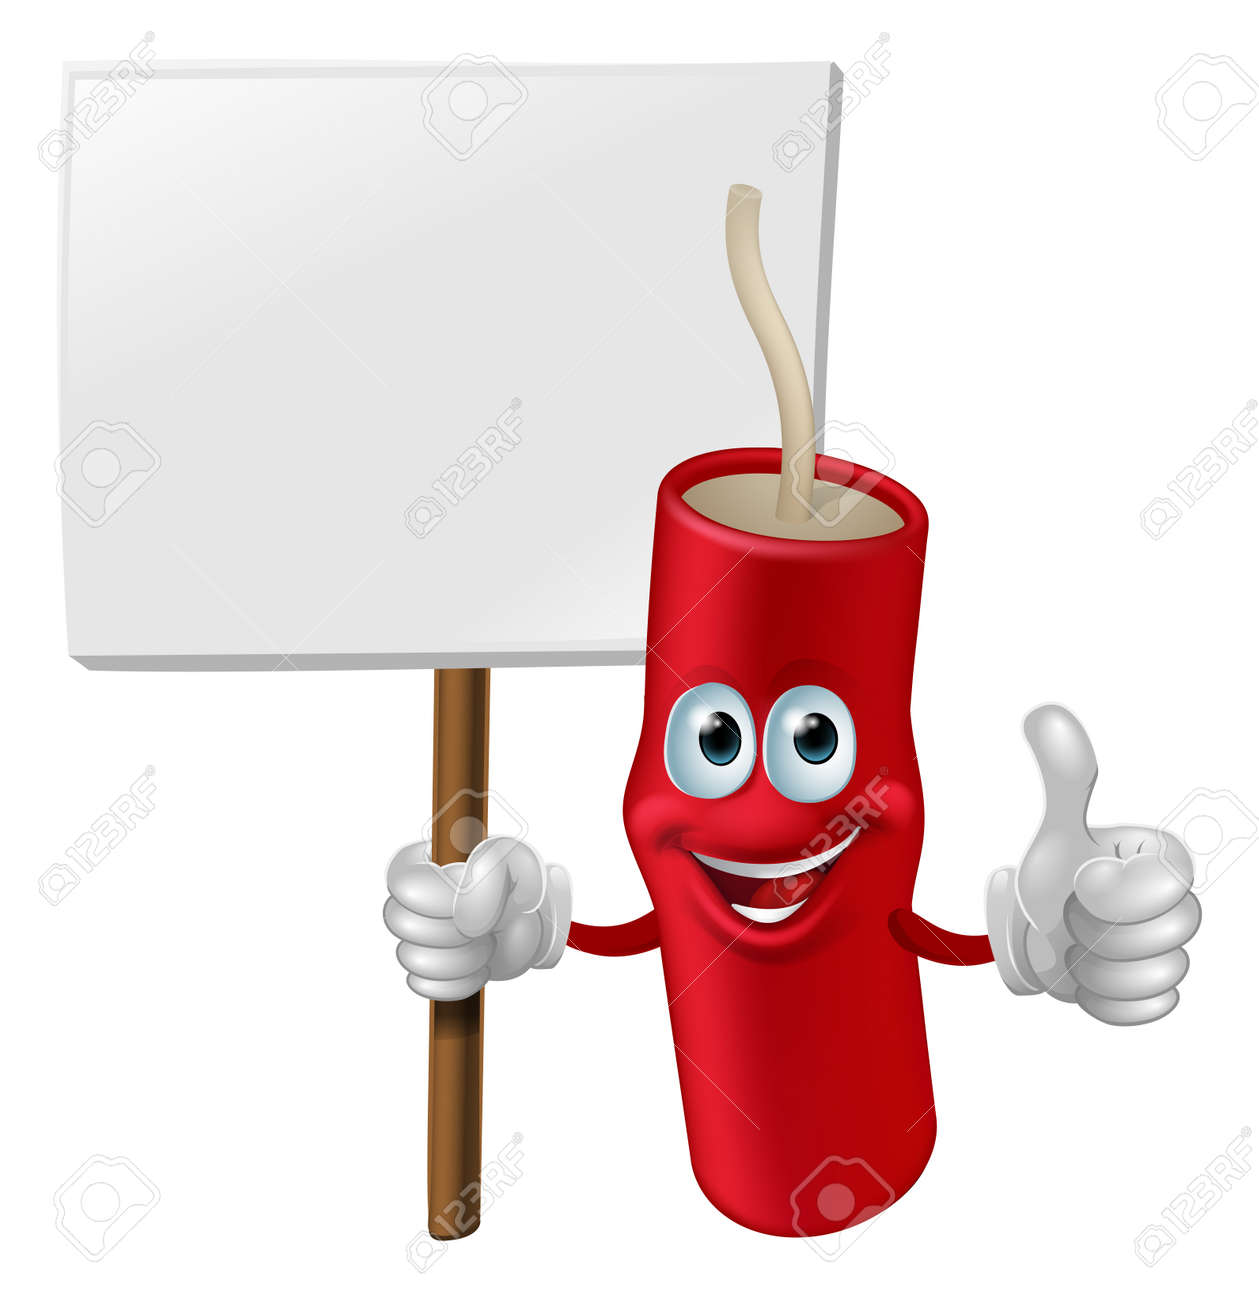 Illustration of a fireworks man holding a sign and doing a thumbs up gesture Stock Vector - 15470355